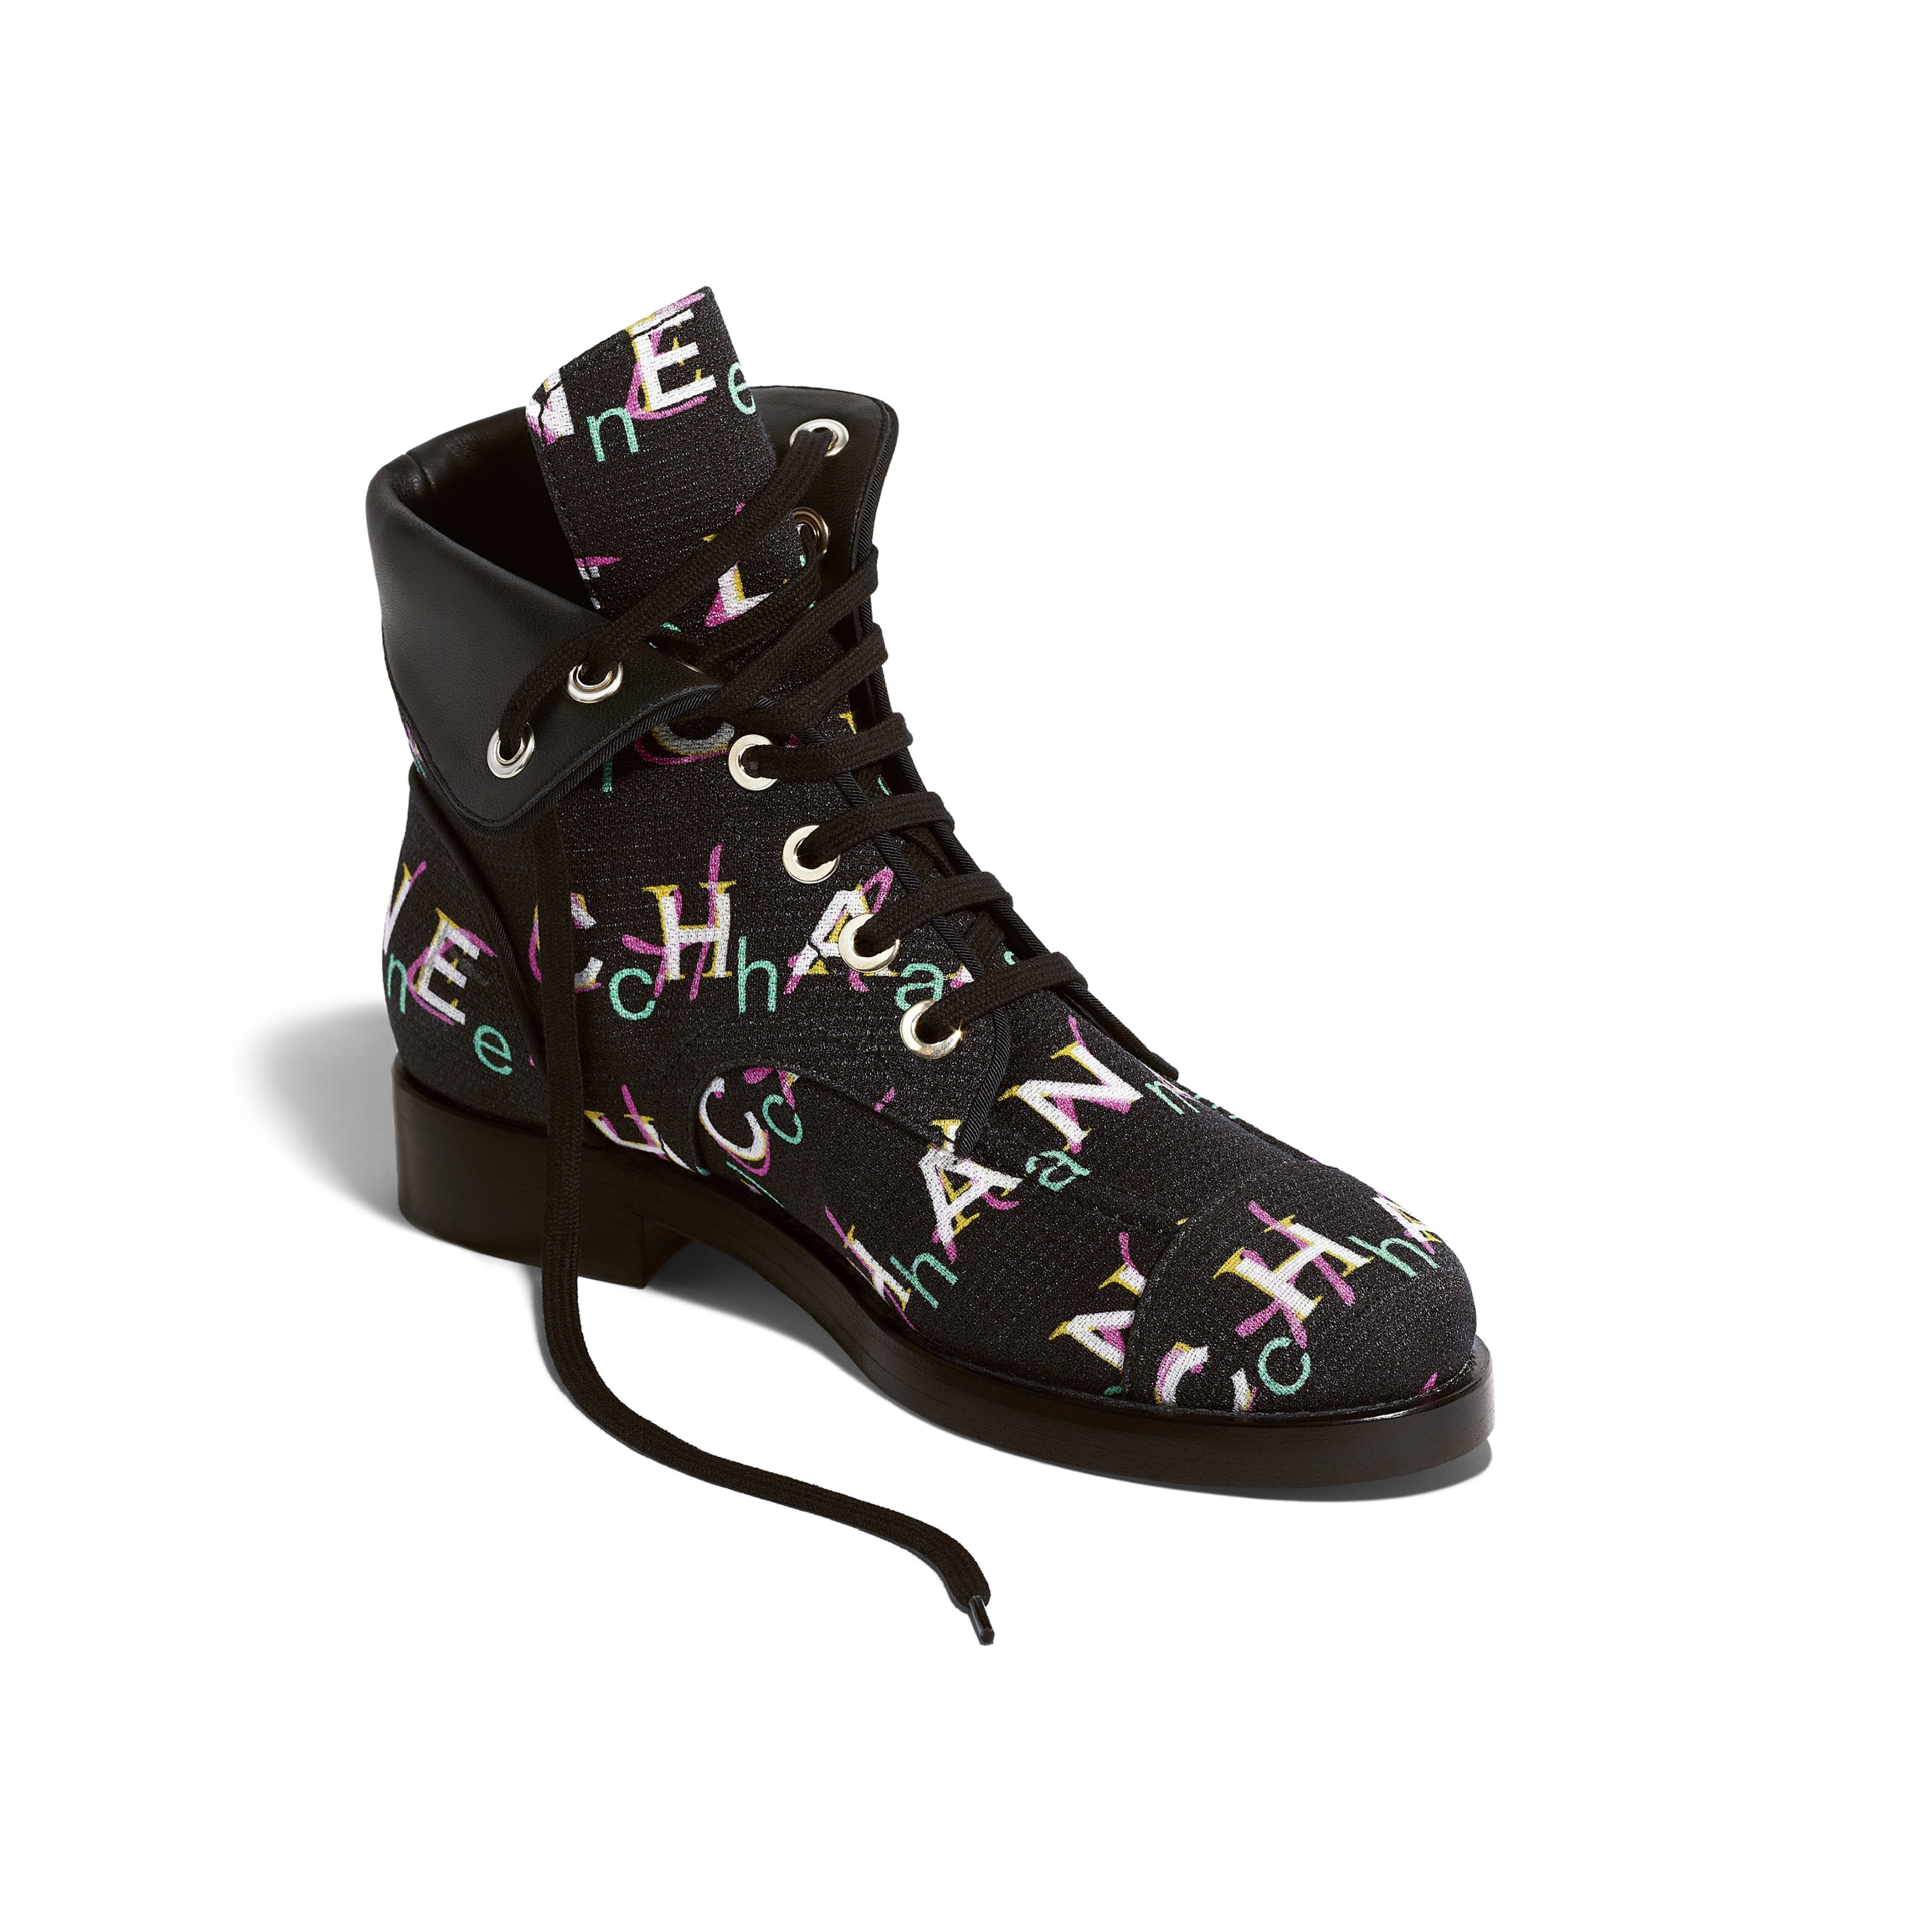 Short Boots - Black & Multicolor - Tweed - Other view - see full sized version